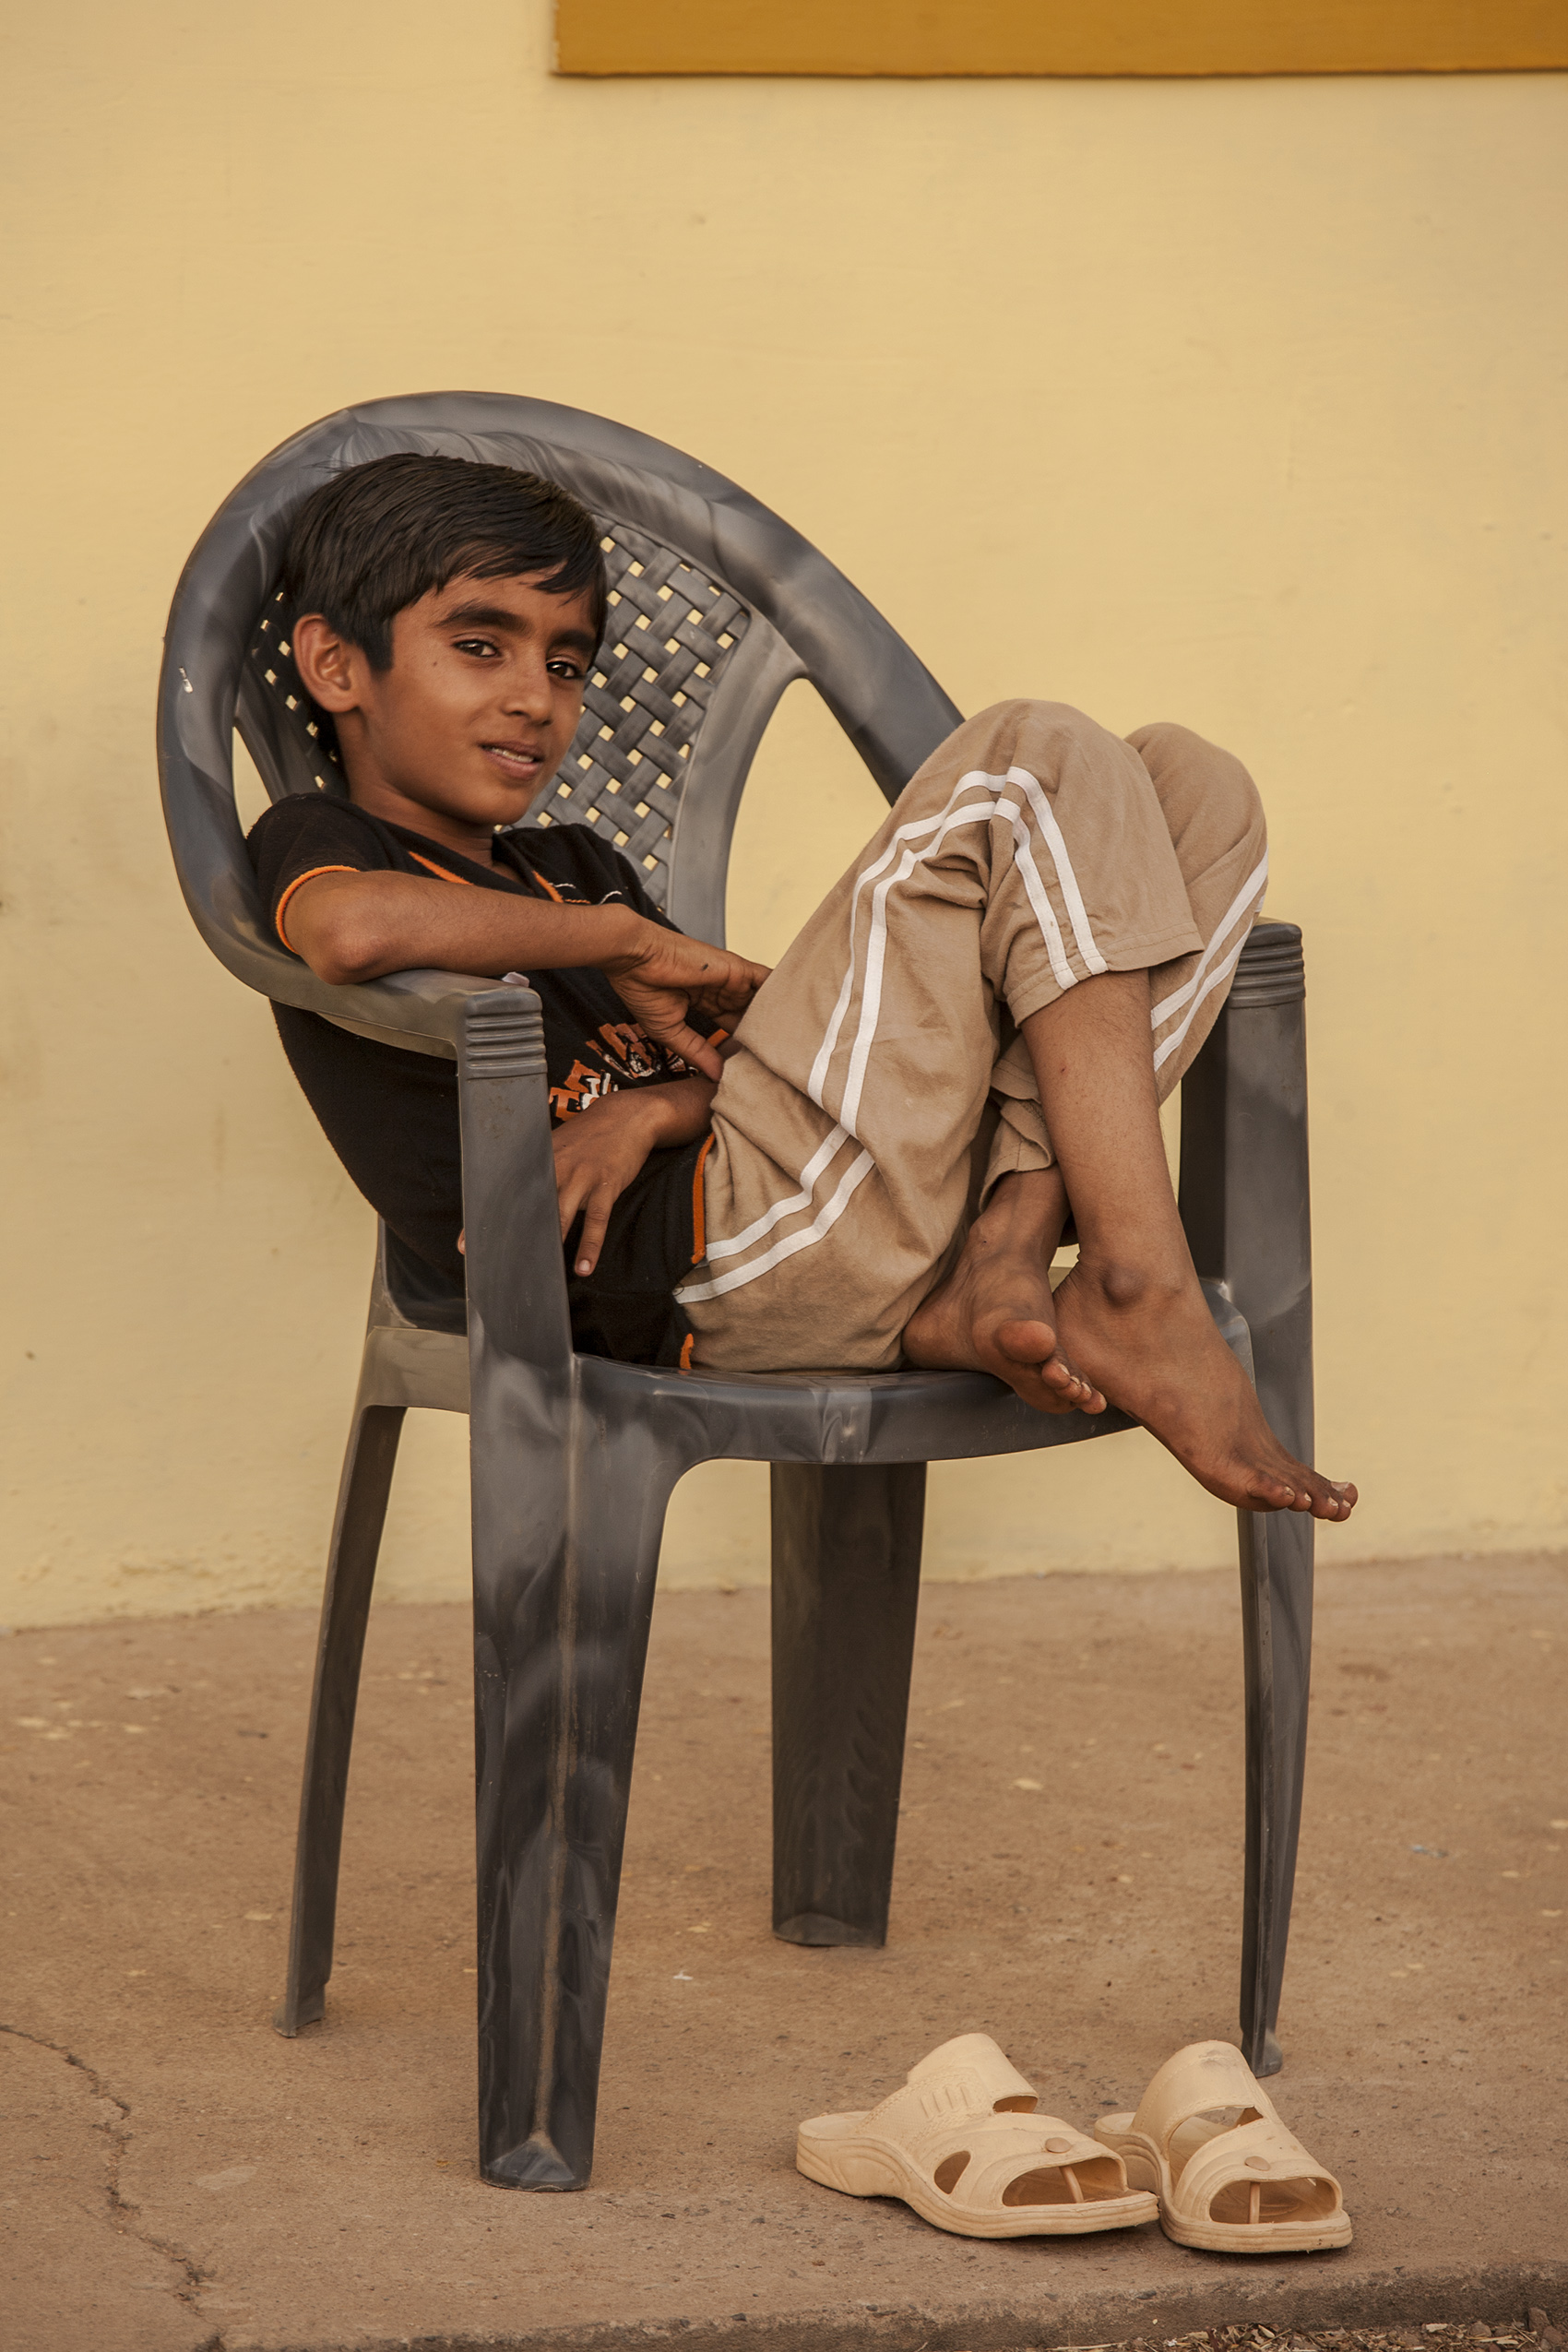 Dalit boy, Gujarat, India